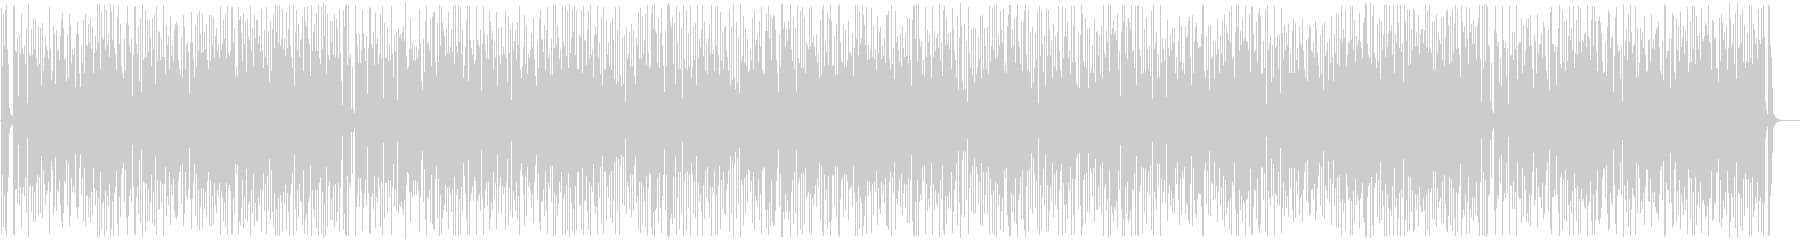 Exciting and fashionable cute songs's unreproduced waveform